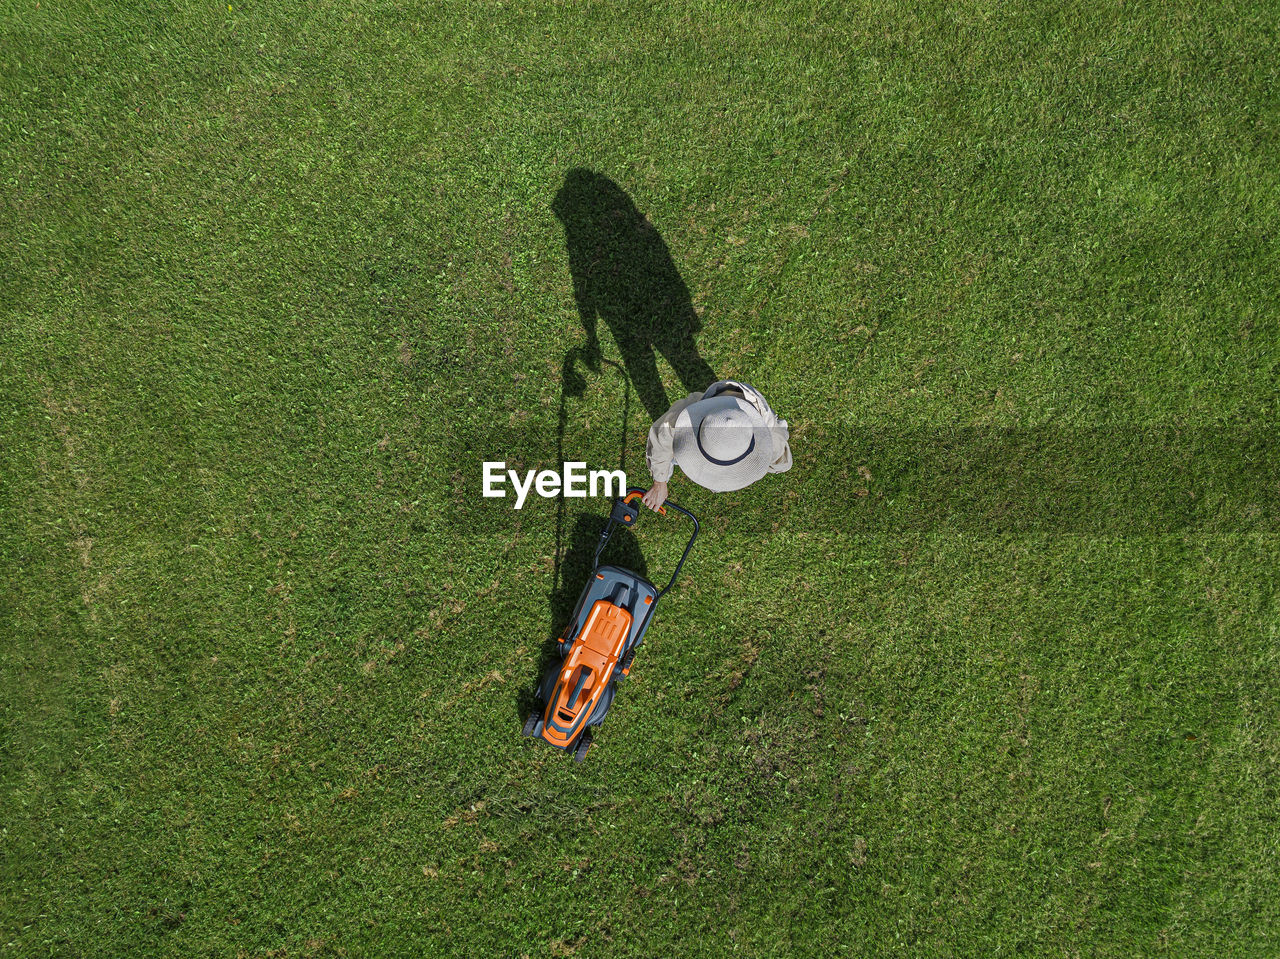 HIGH ANGLE VIEW OF PERSON ON FIELD